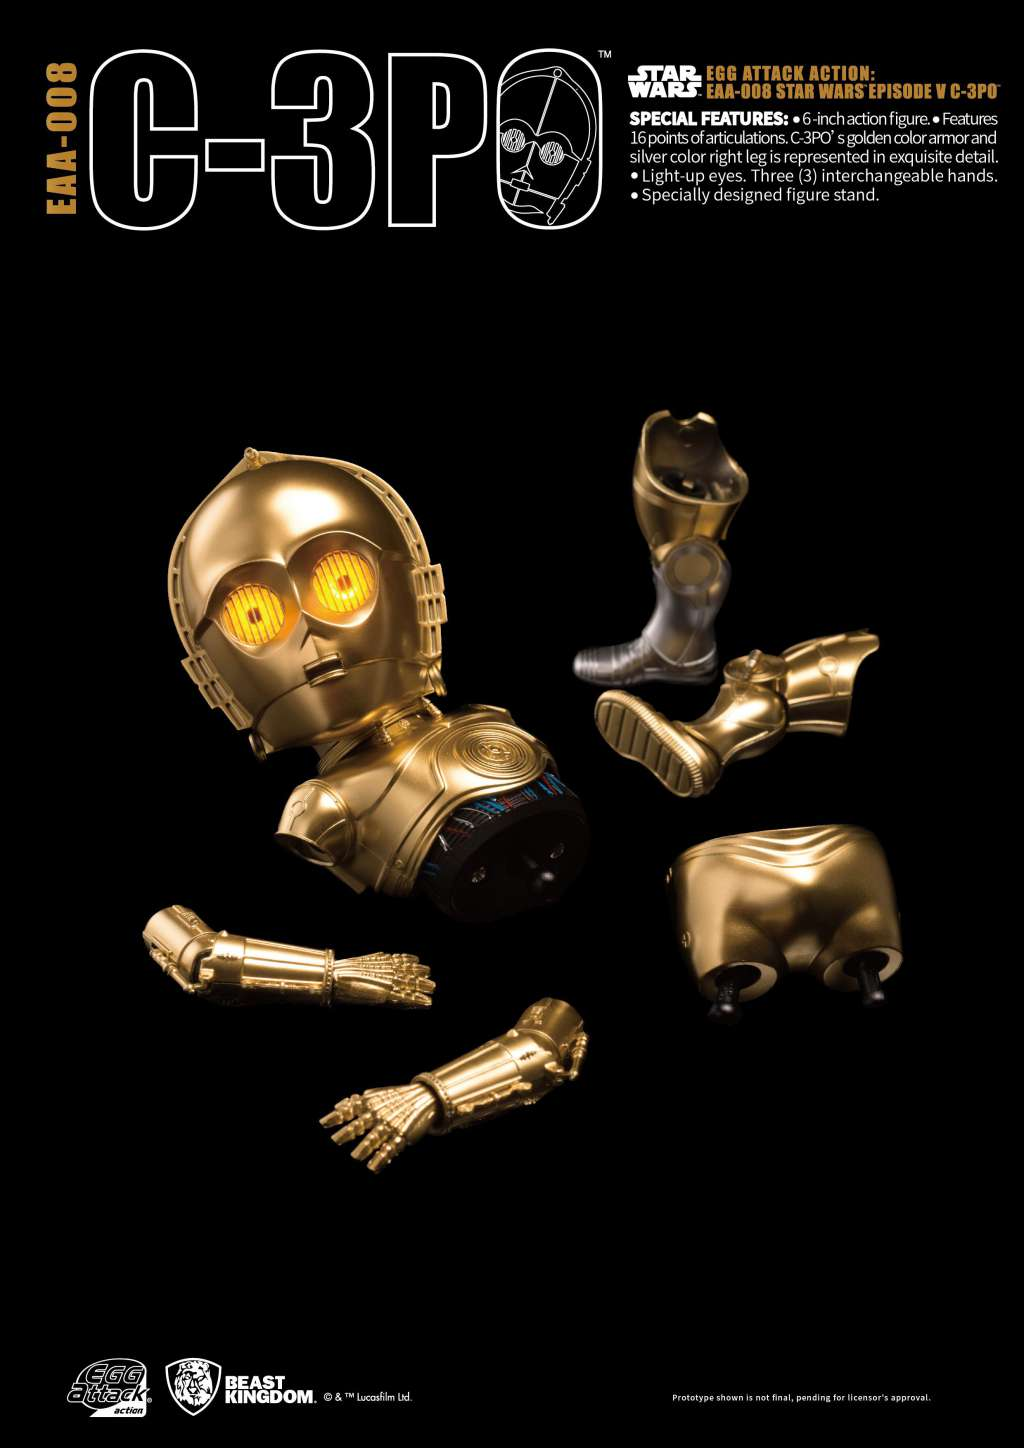 Star Wars Egg Attack Figura C-3PO Episodio V 04